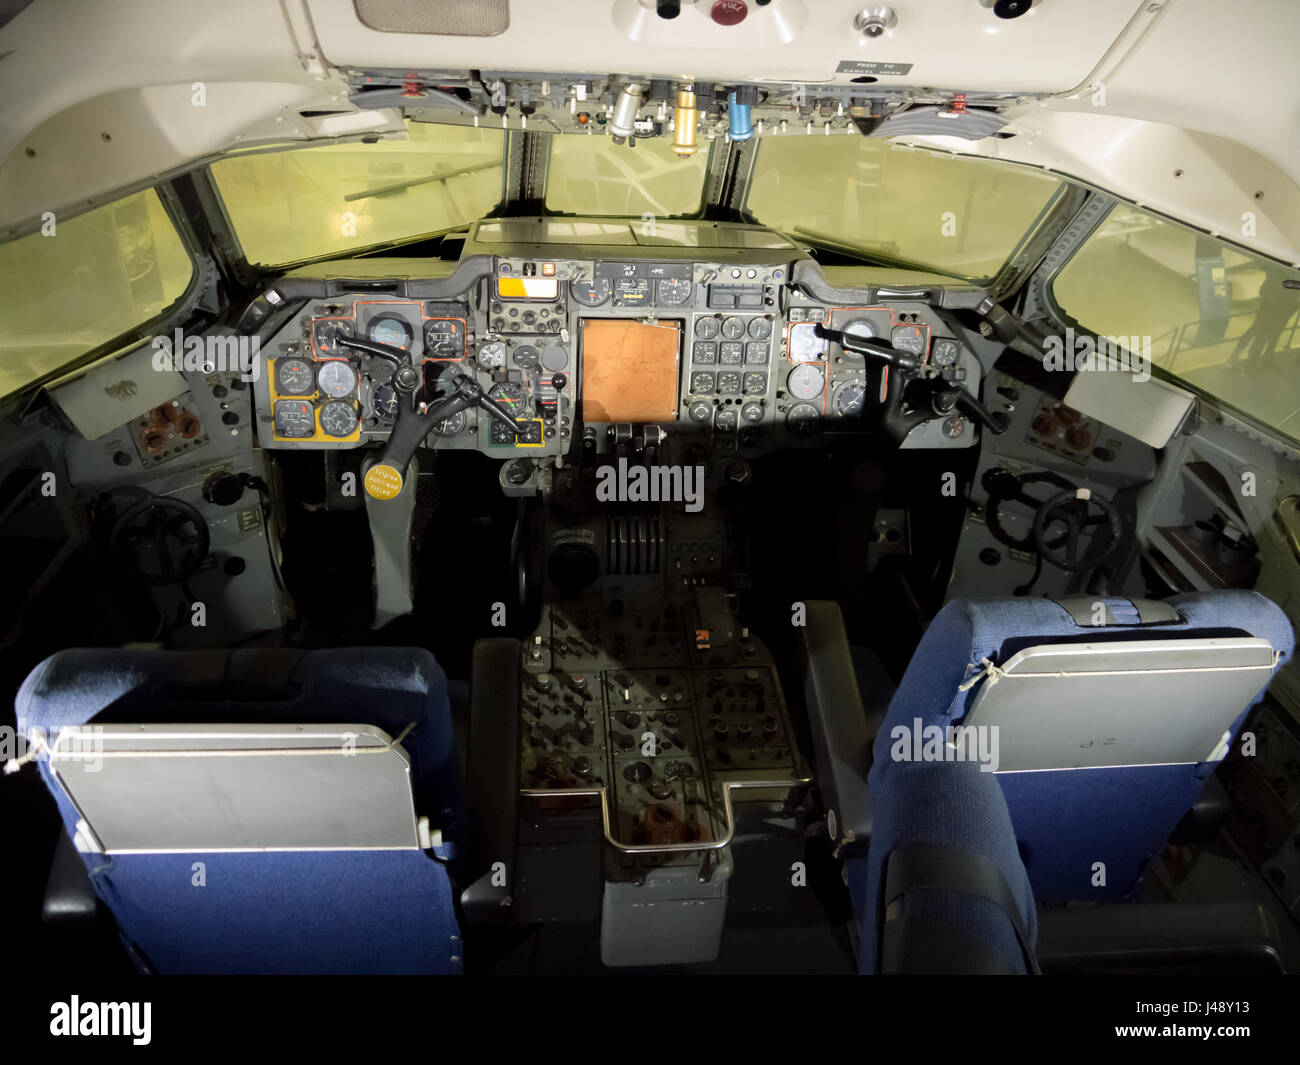 The cockpit interior of a Hawker Siddeley HS 121 Trident - Stock Image